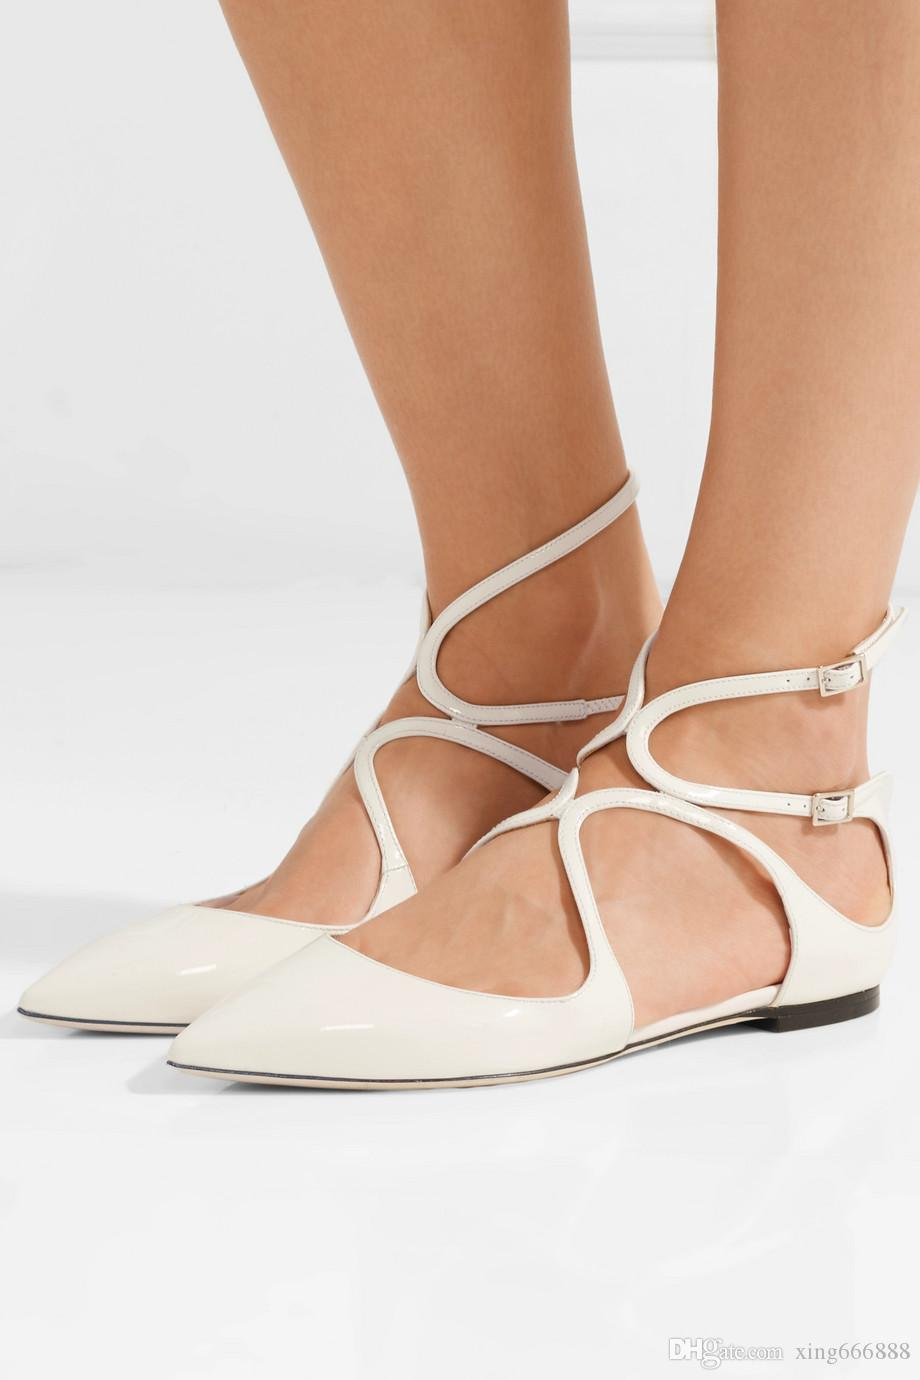 034957c76 Sexy Lancer Point Toe Flat Black,White Comfortable Ankle Strap Luxury  Design Ladies Ballet Flats Dress Wedding Party With Box Euro 35 42 High  Heels Shoes ...